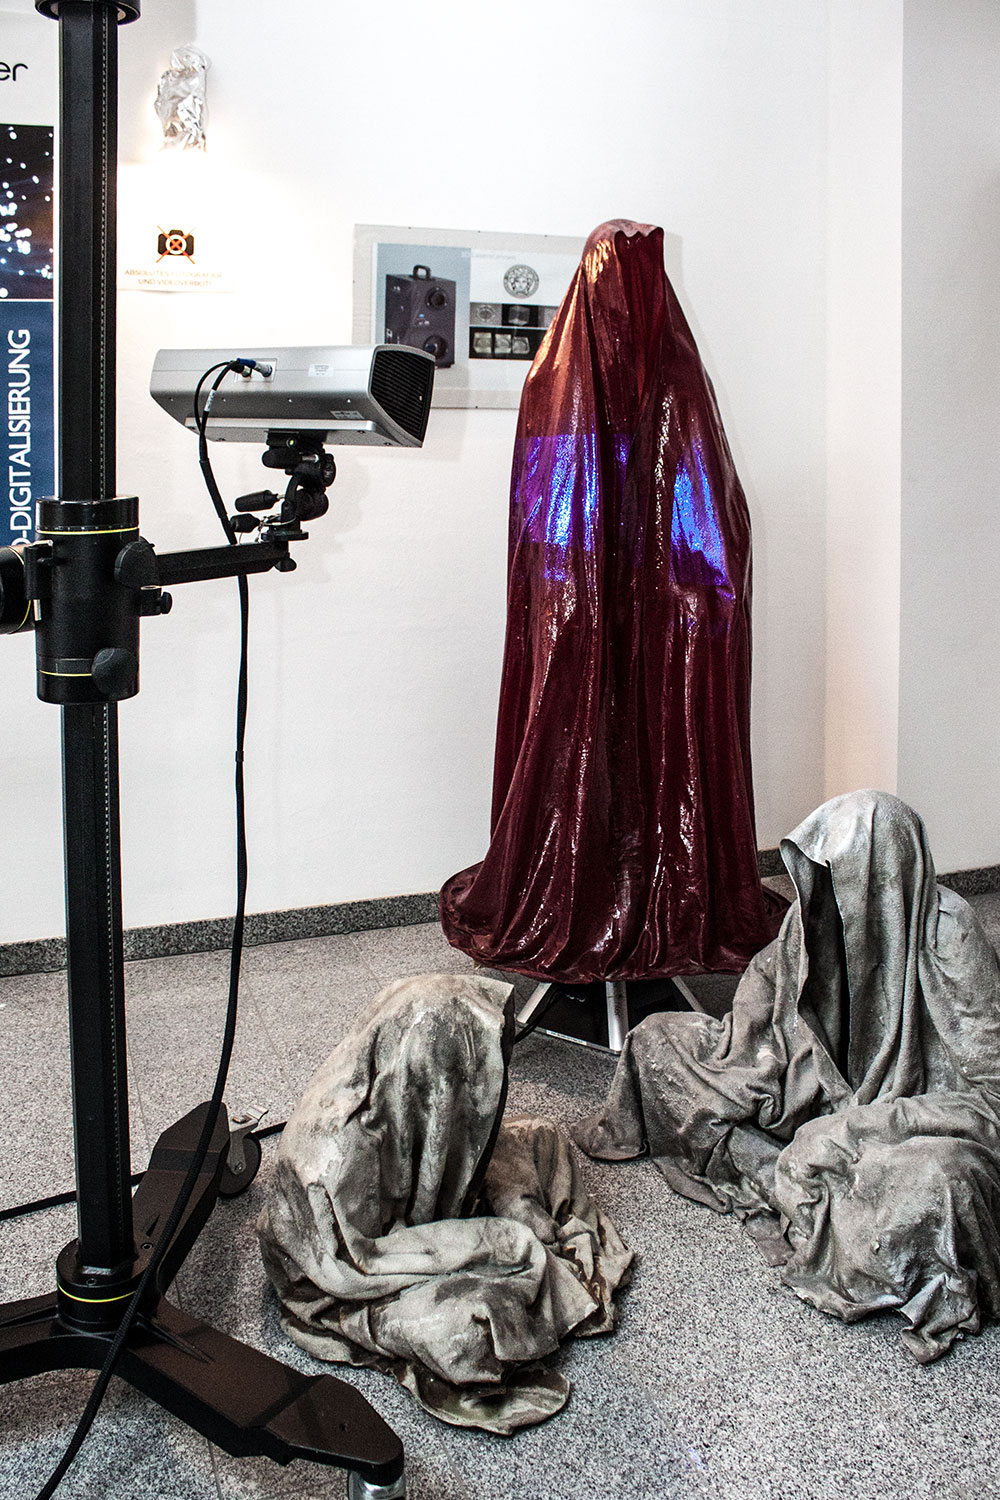 3d-printing-scan-dimensional-digital-form-shape-sculpture-statue-haratech-modern-contemporary-art-arts-arte-guardians-of-time-ghost-cloak-shroud-faceless-manfred-kielnhofer-9615